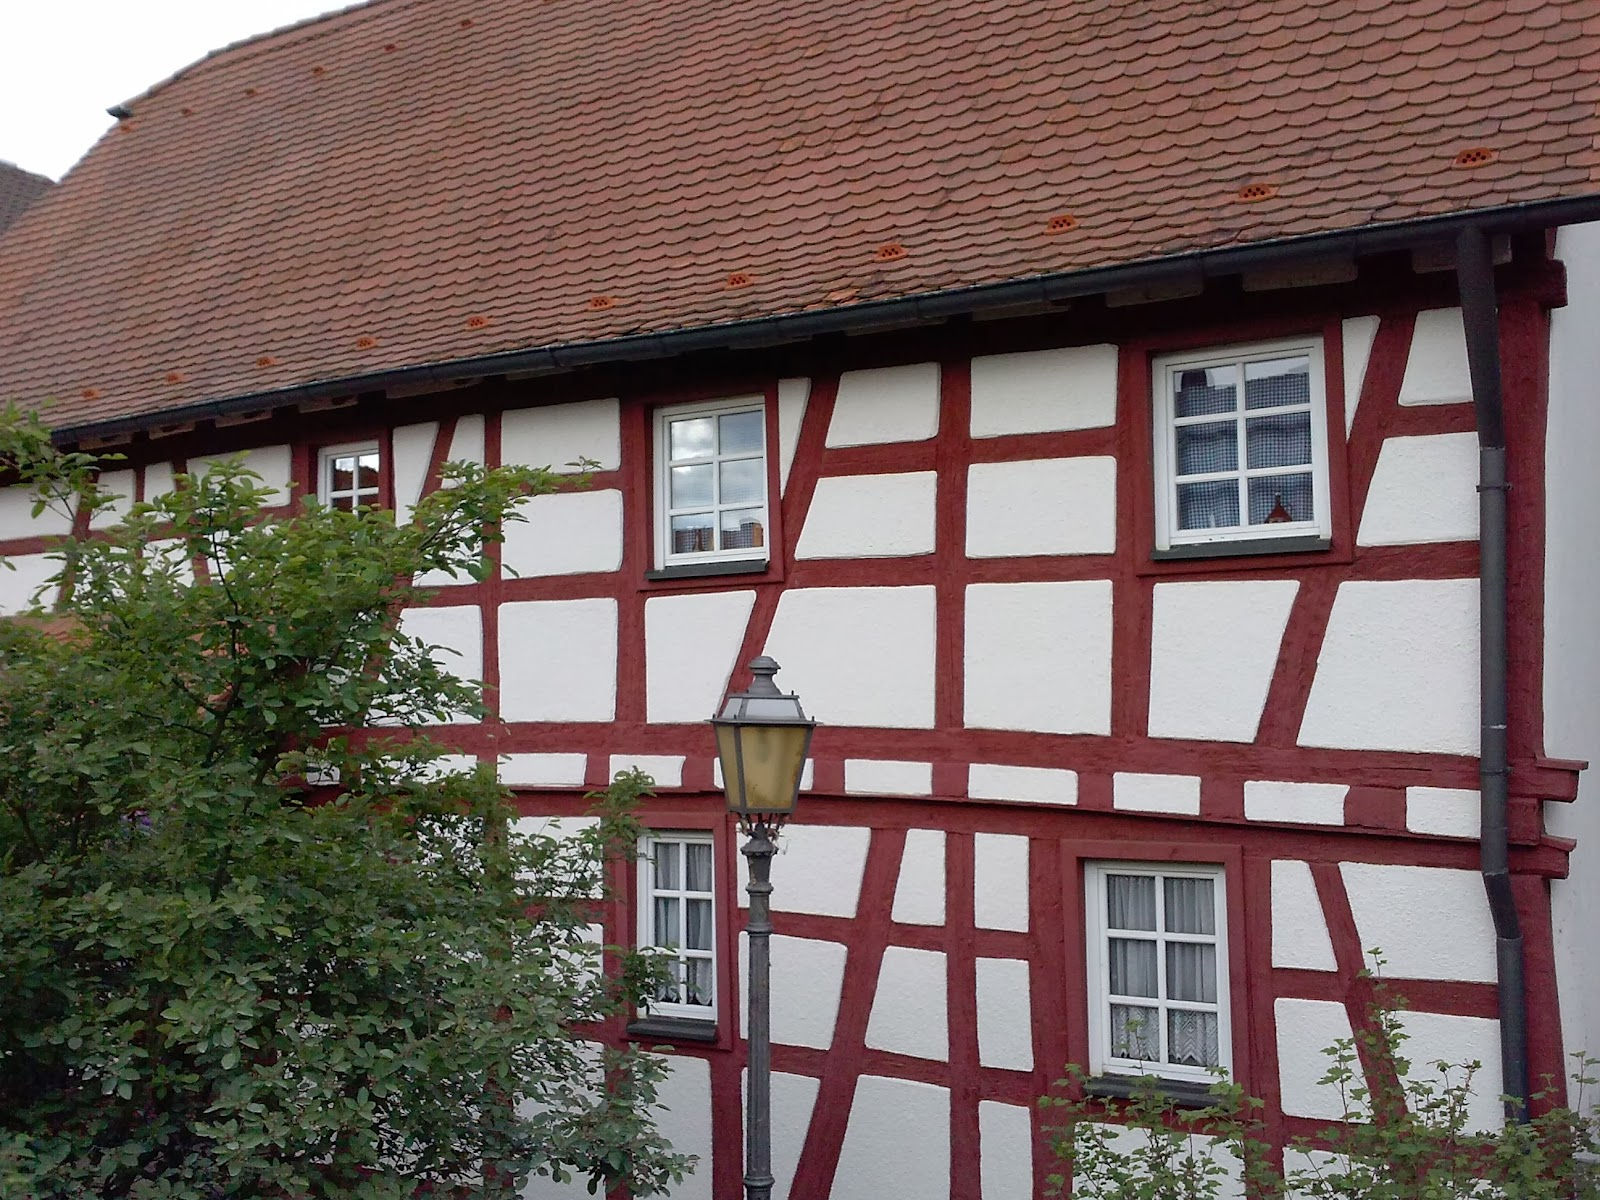 an old house in Elsenfeld